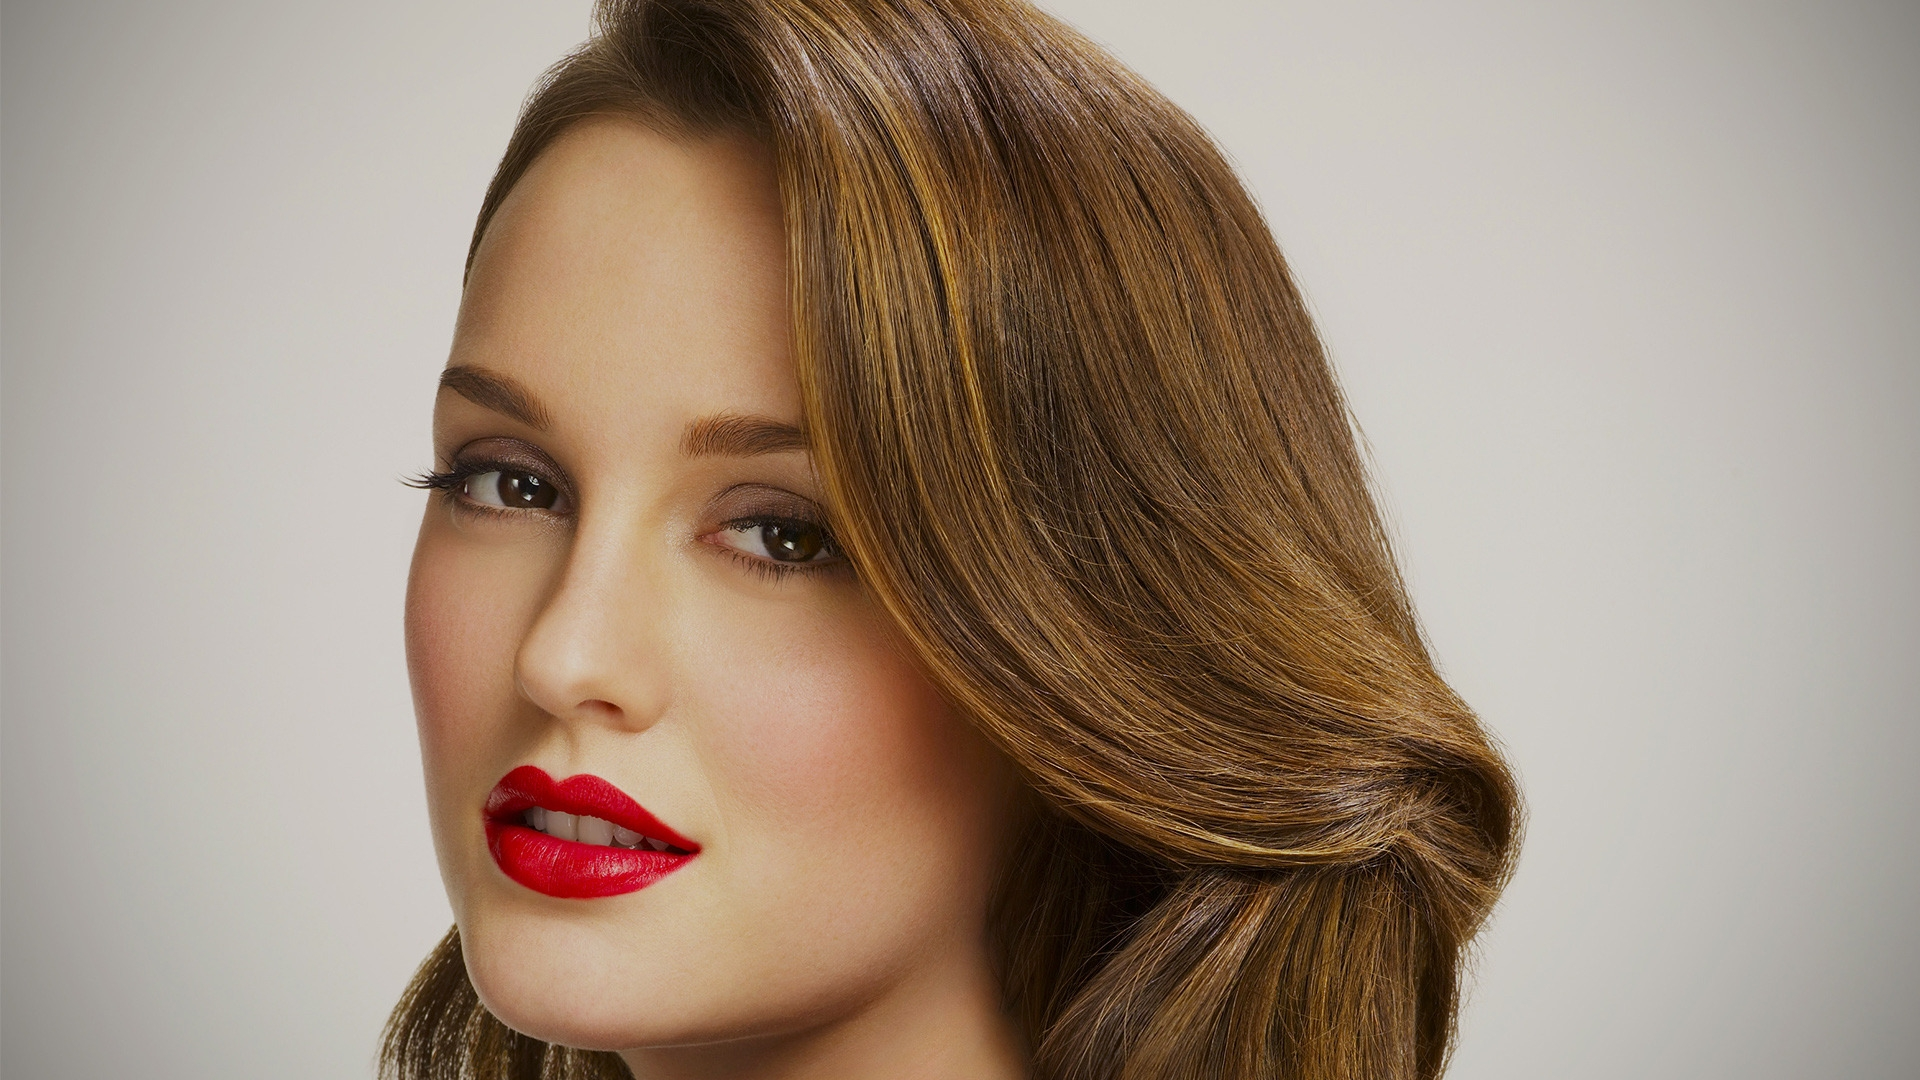 Leighton Meester Gorgeous for 1920 x 1080 HDTV 1080p resolution